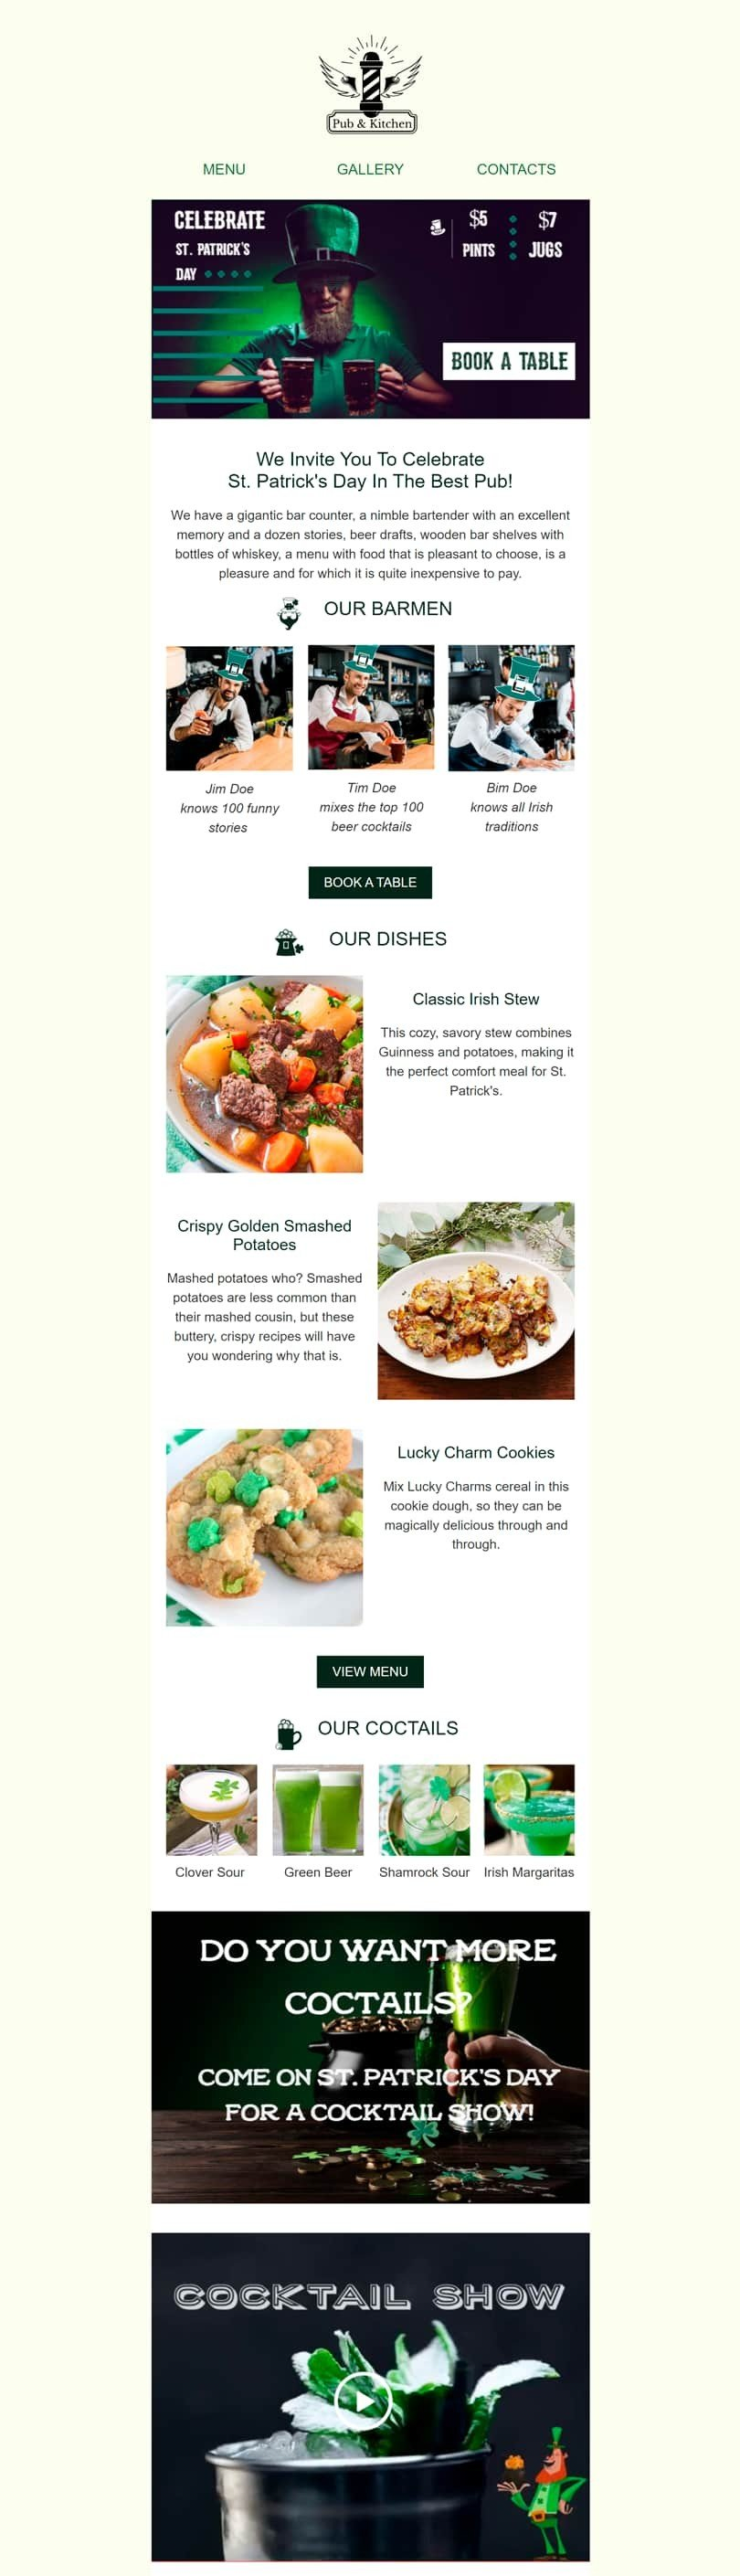 St. Patrick's Day Email Template «In The Best Pub» for Food industry desktop view